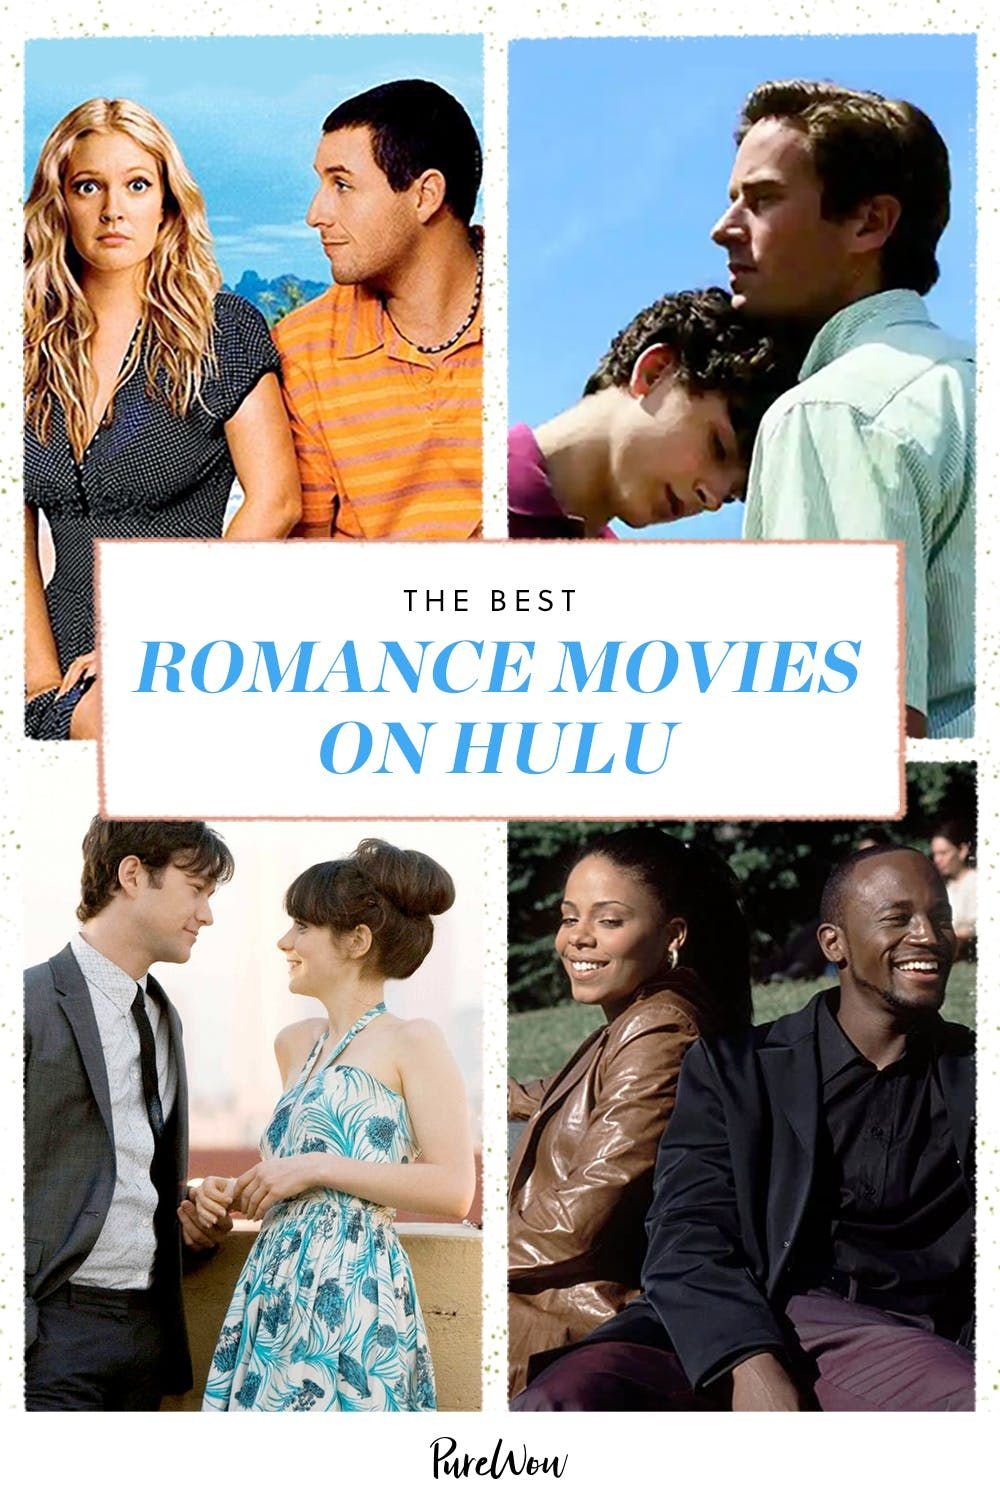 The 30 Best Romance Movies On Hulu From Palm Springs To The Wedding Planner In 2021 Romance Movies Best Romance Movies Best Romantic Movies